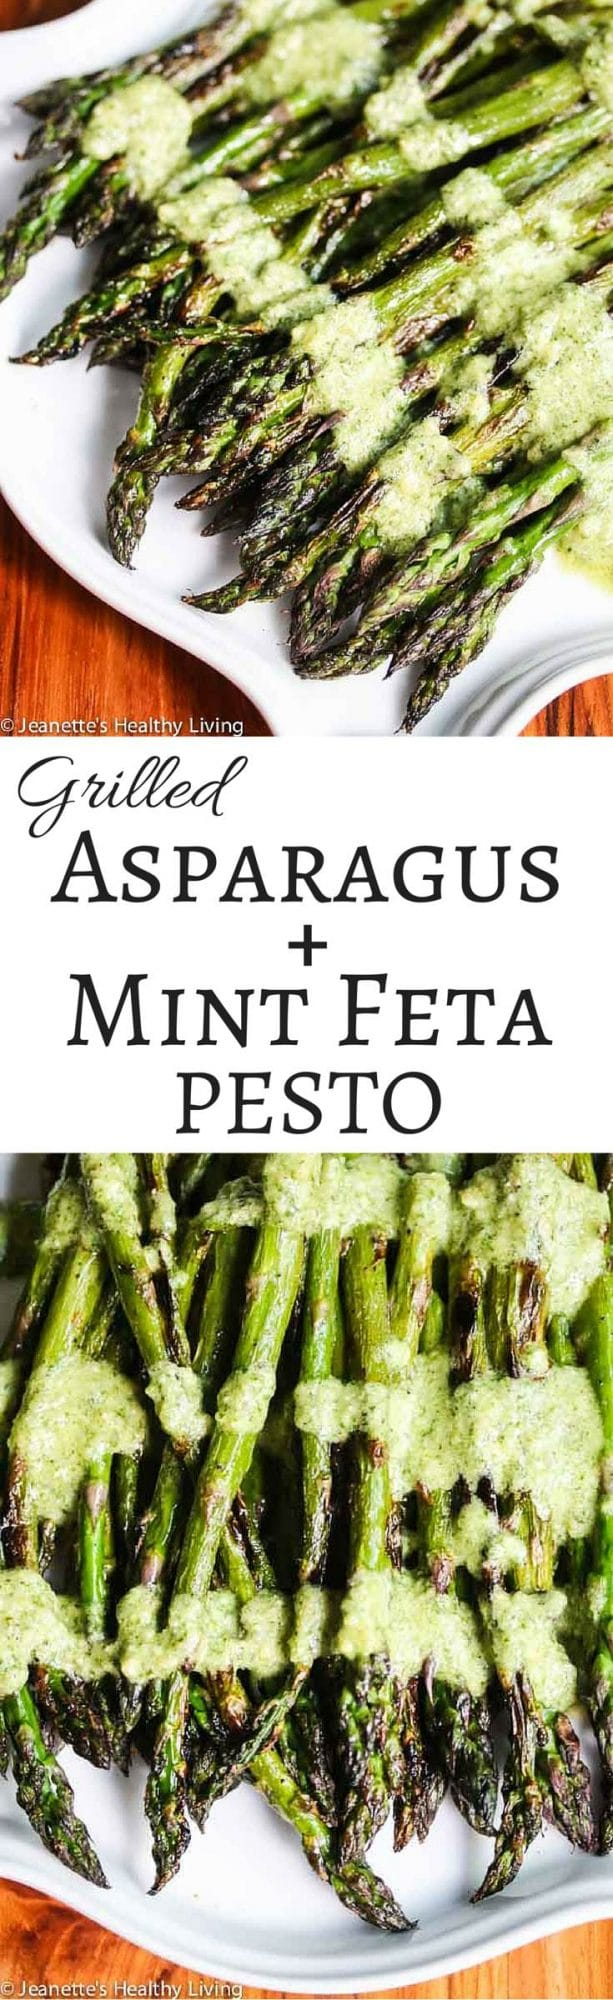 Grilled Asparagus with Mint Feta Pesto - the fresh tangy mint feta topping brings grilled asparagus up a notch